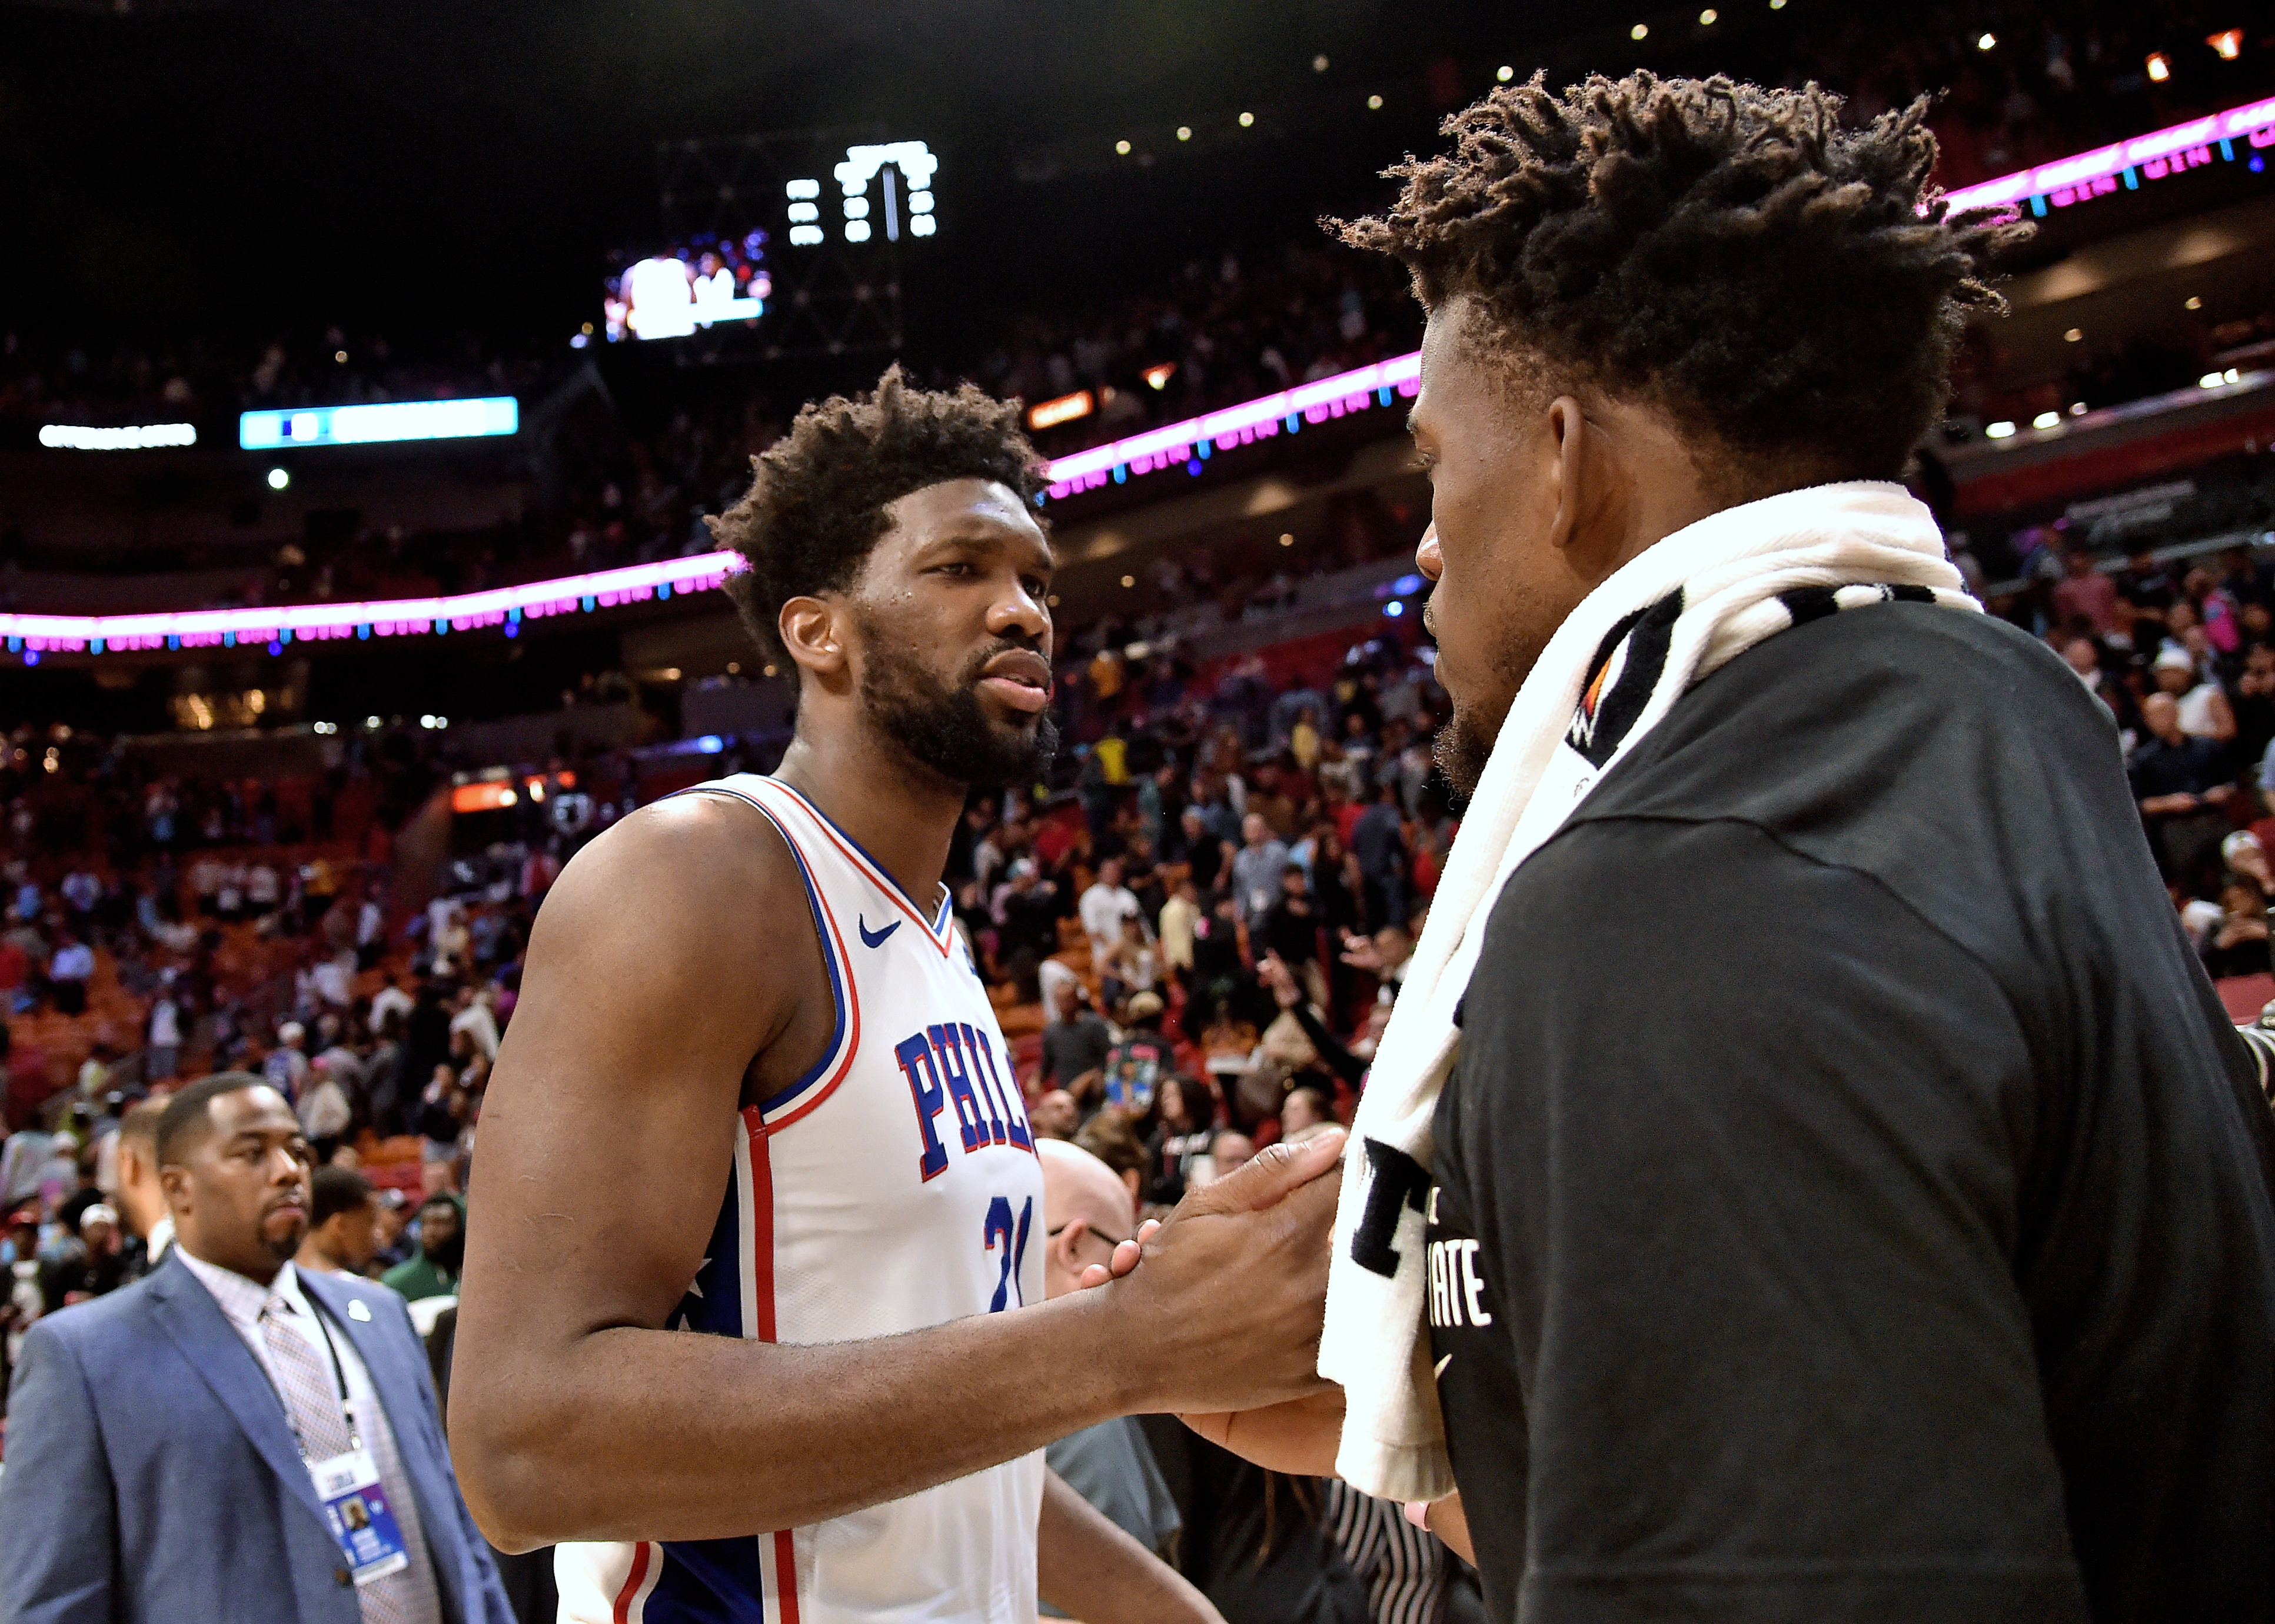 Jimmy Butler invites Joel Embiid to join him on Heat with Instagram activity